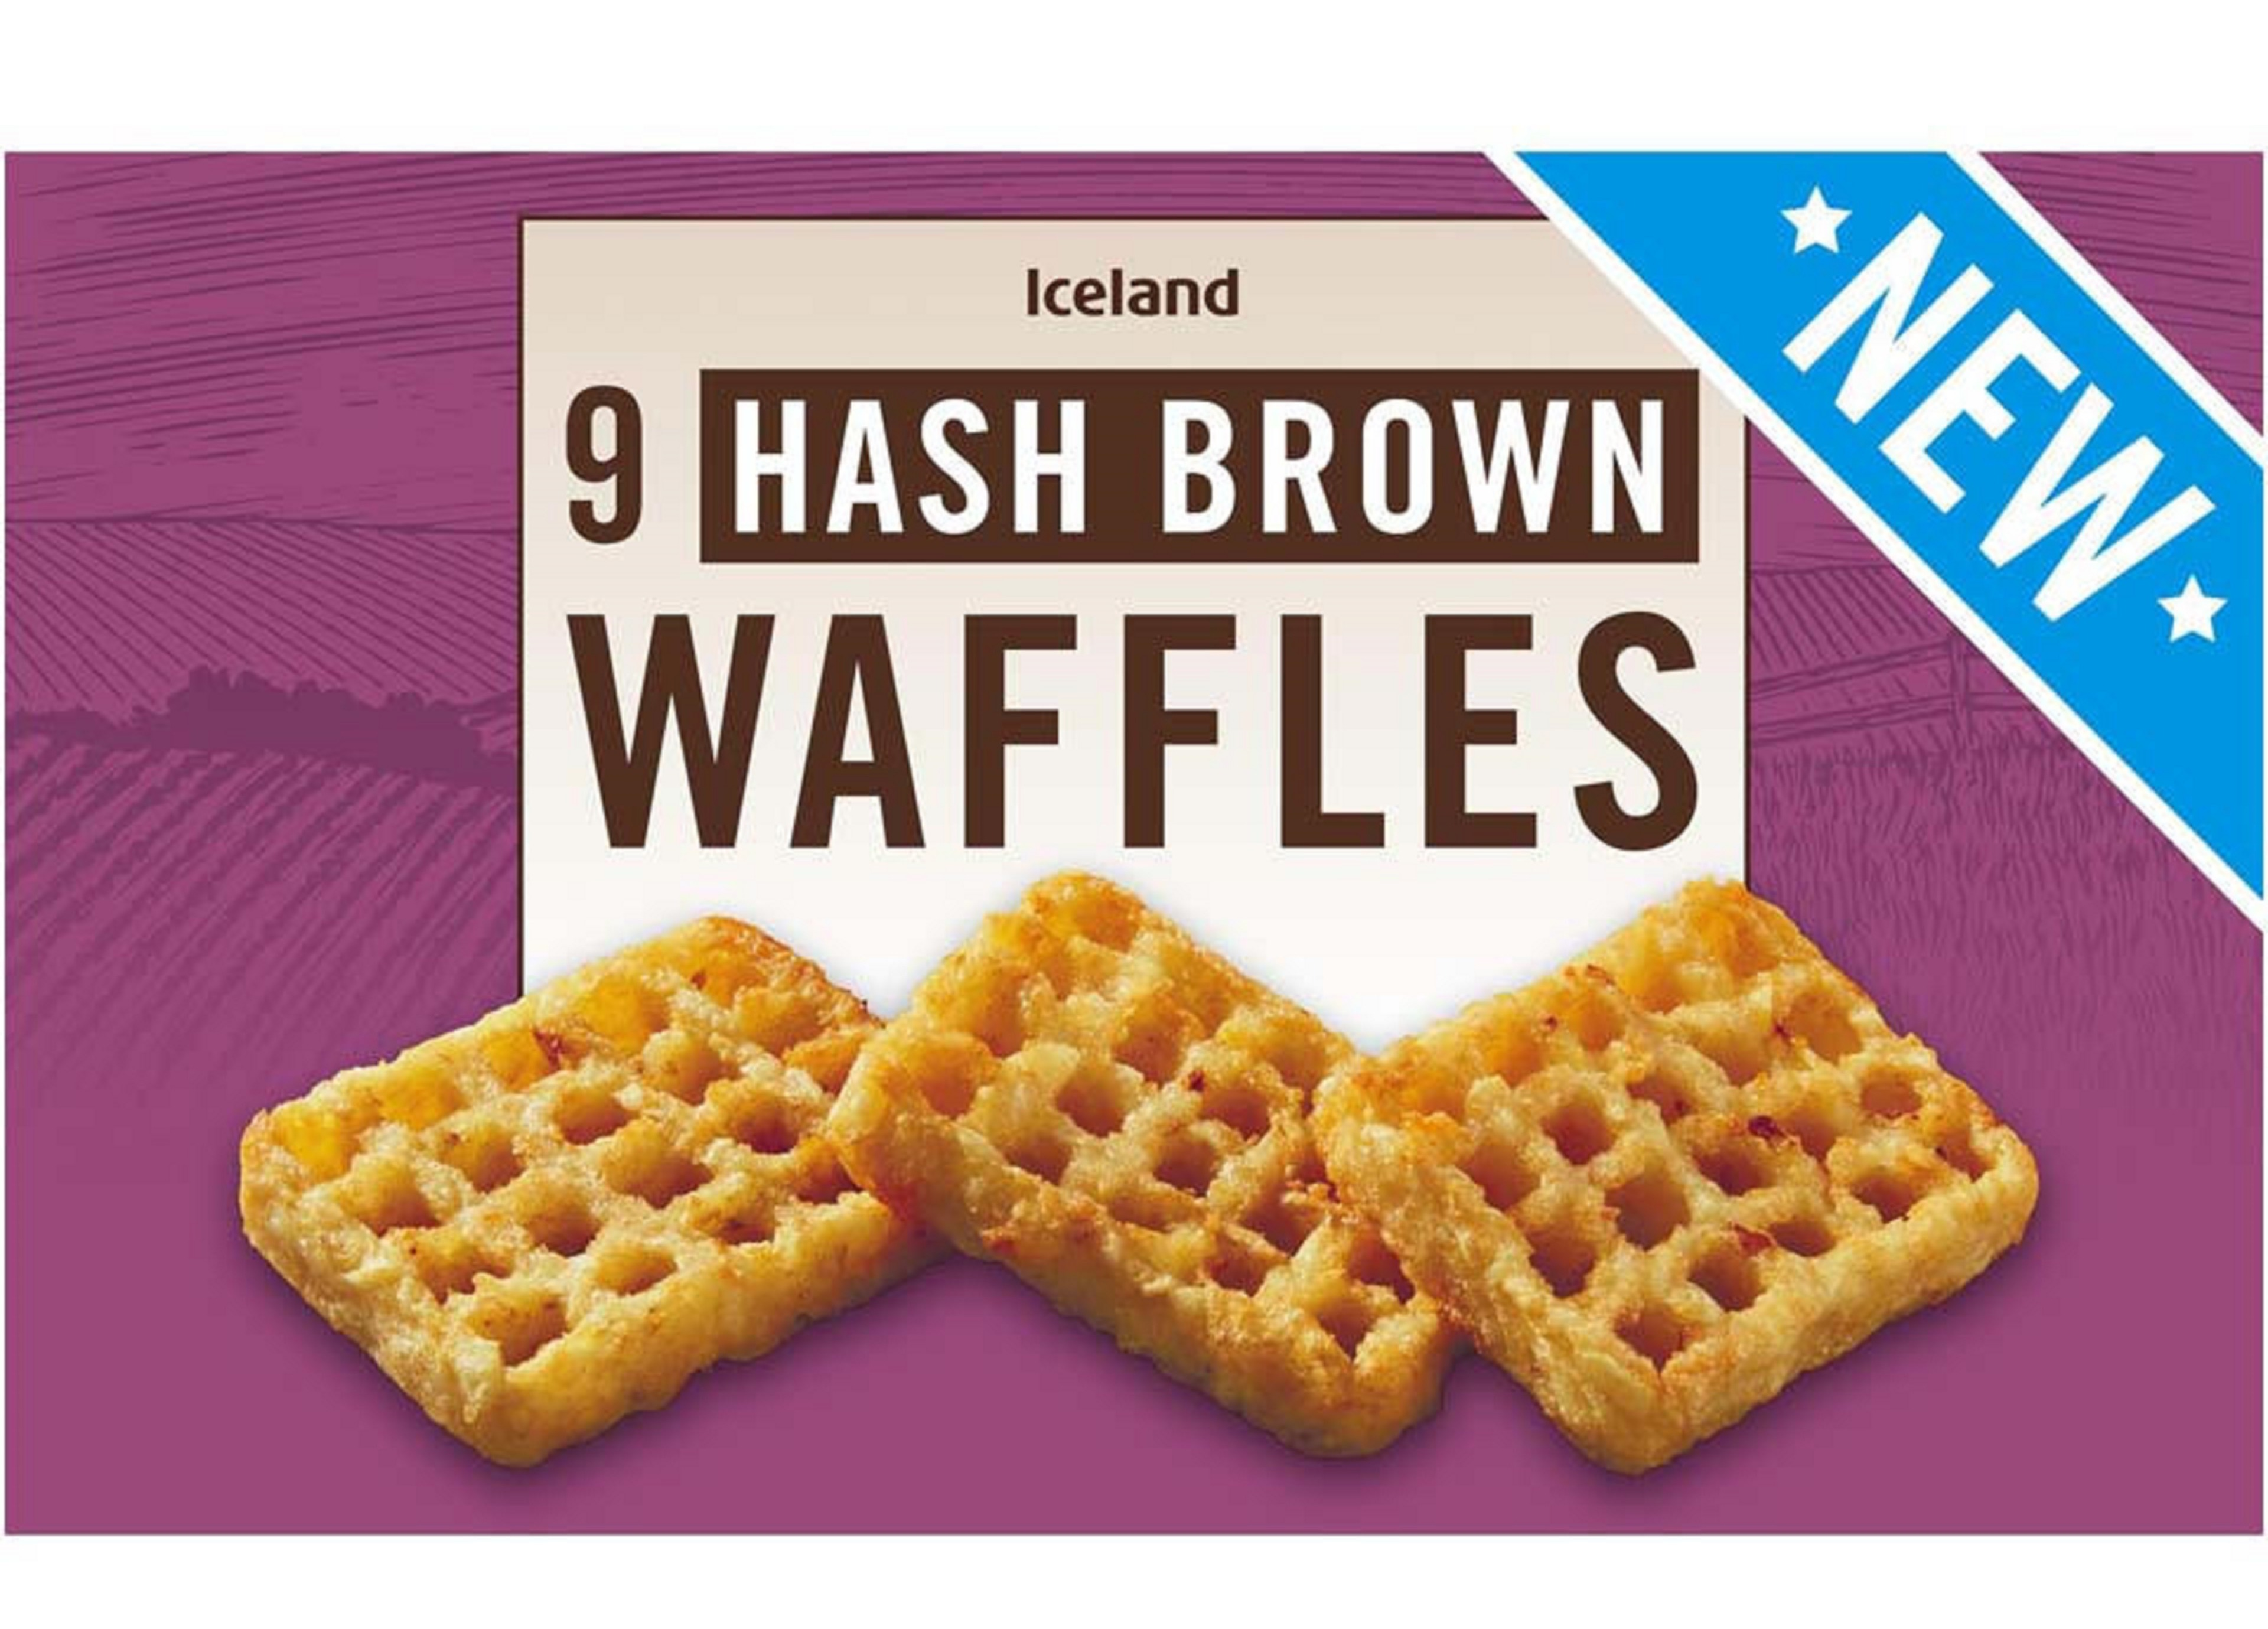 These hash brown waffles at Iceland are £1